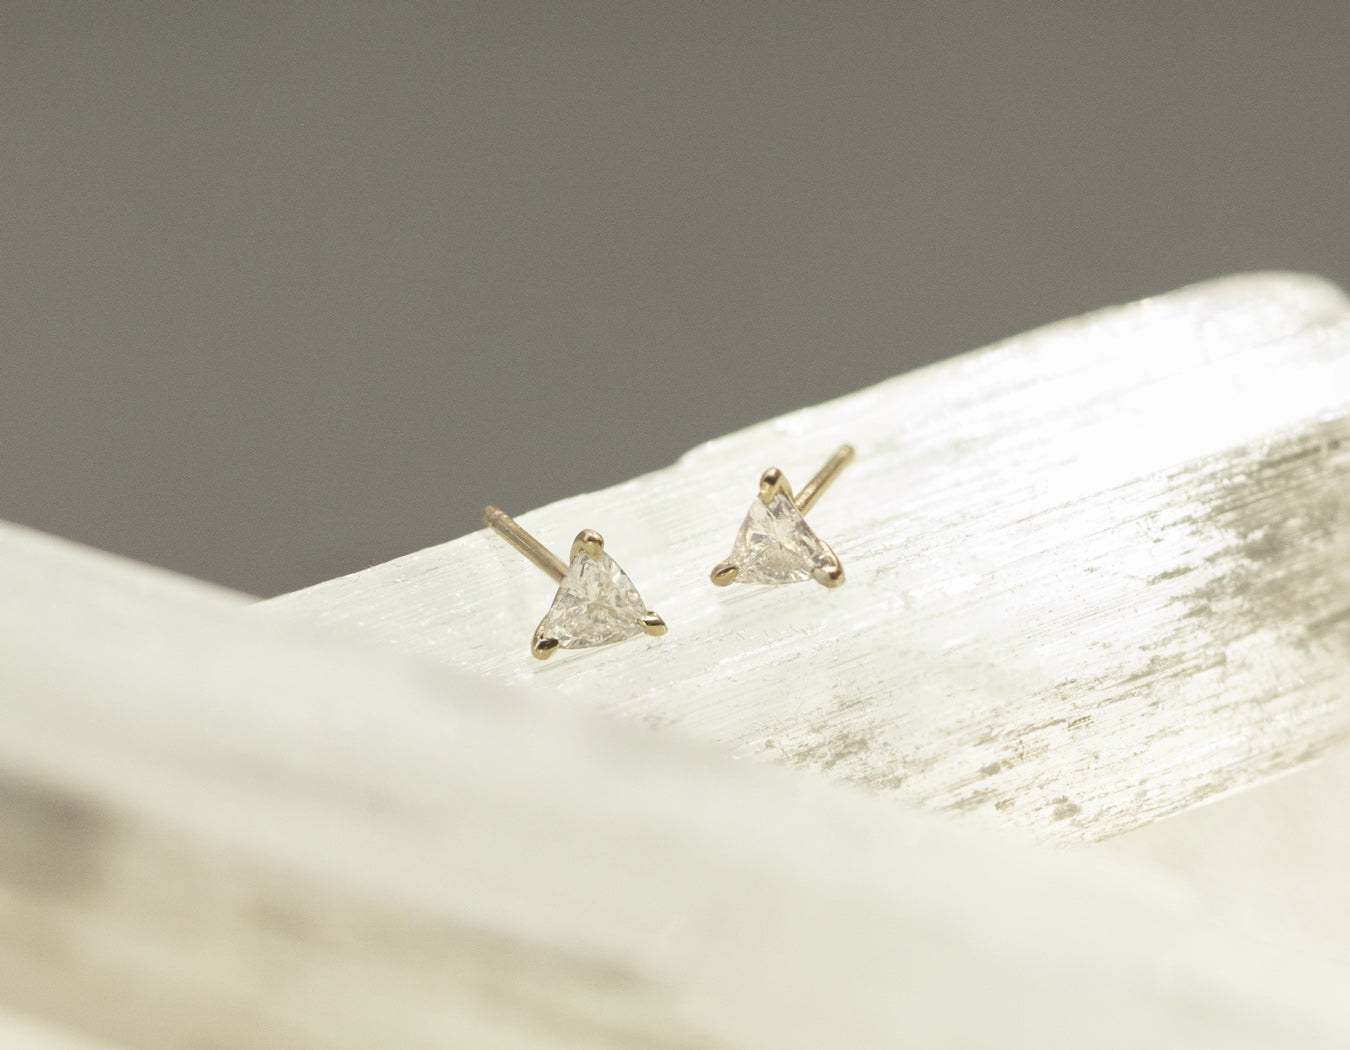 Close up of subtle sophisticated 14k yellow gold Trillion Diamond Earring black background by Vrai & Oro